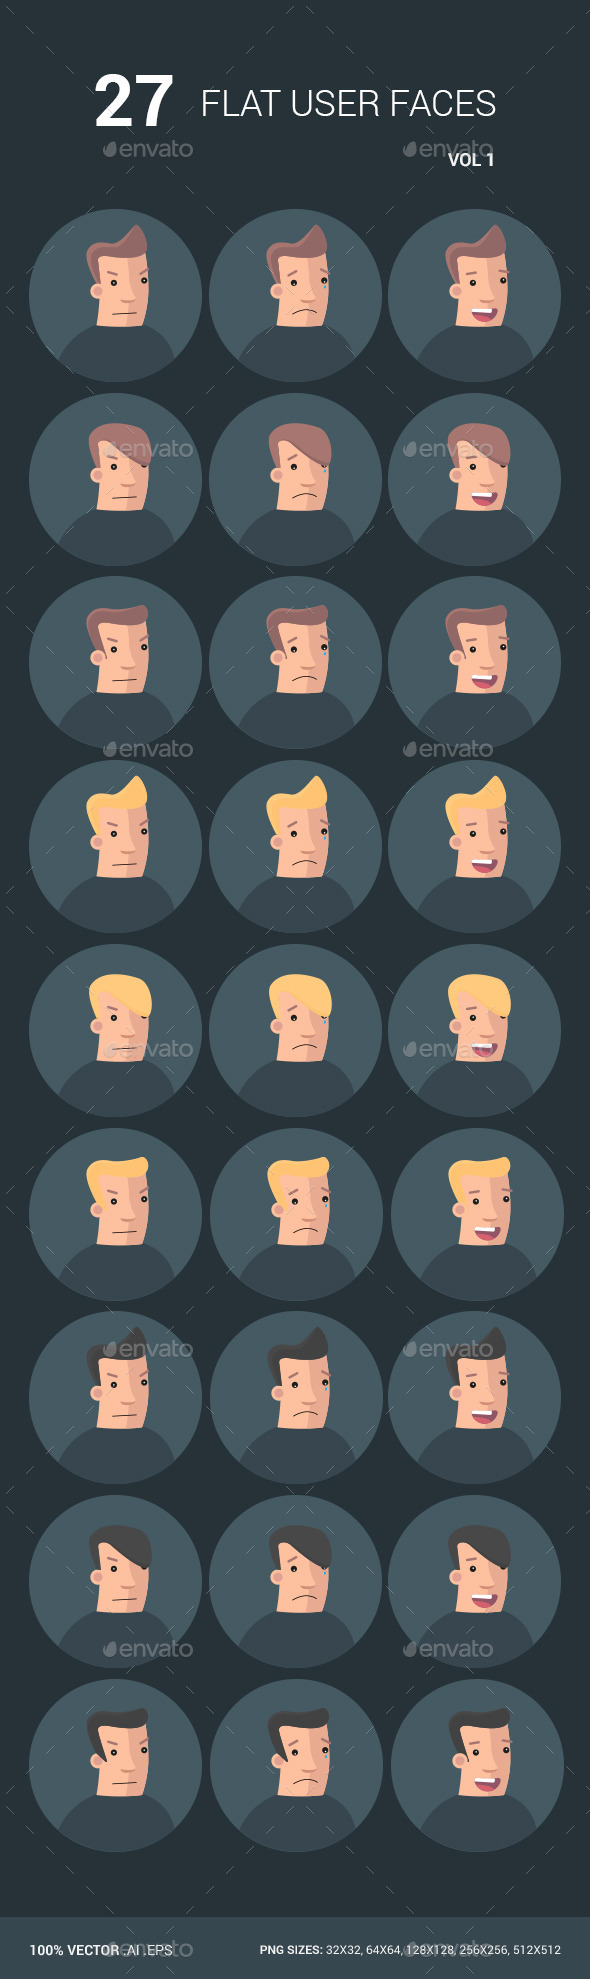 27 Flat User Faces - People Characters